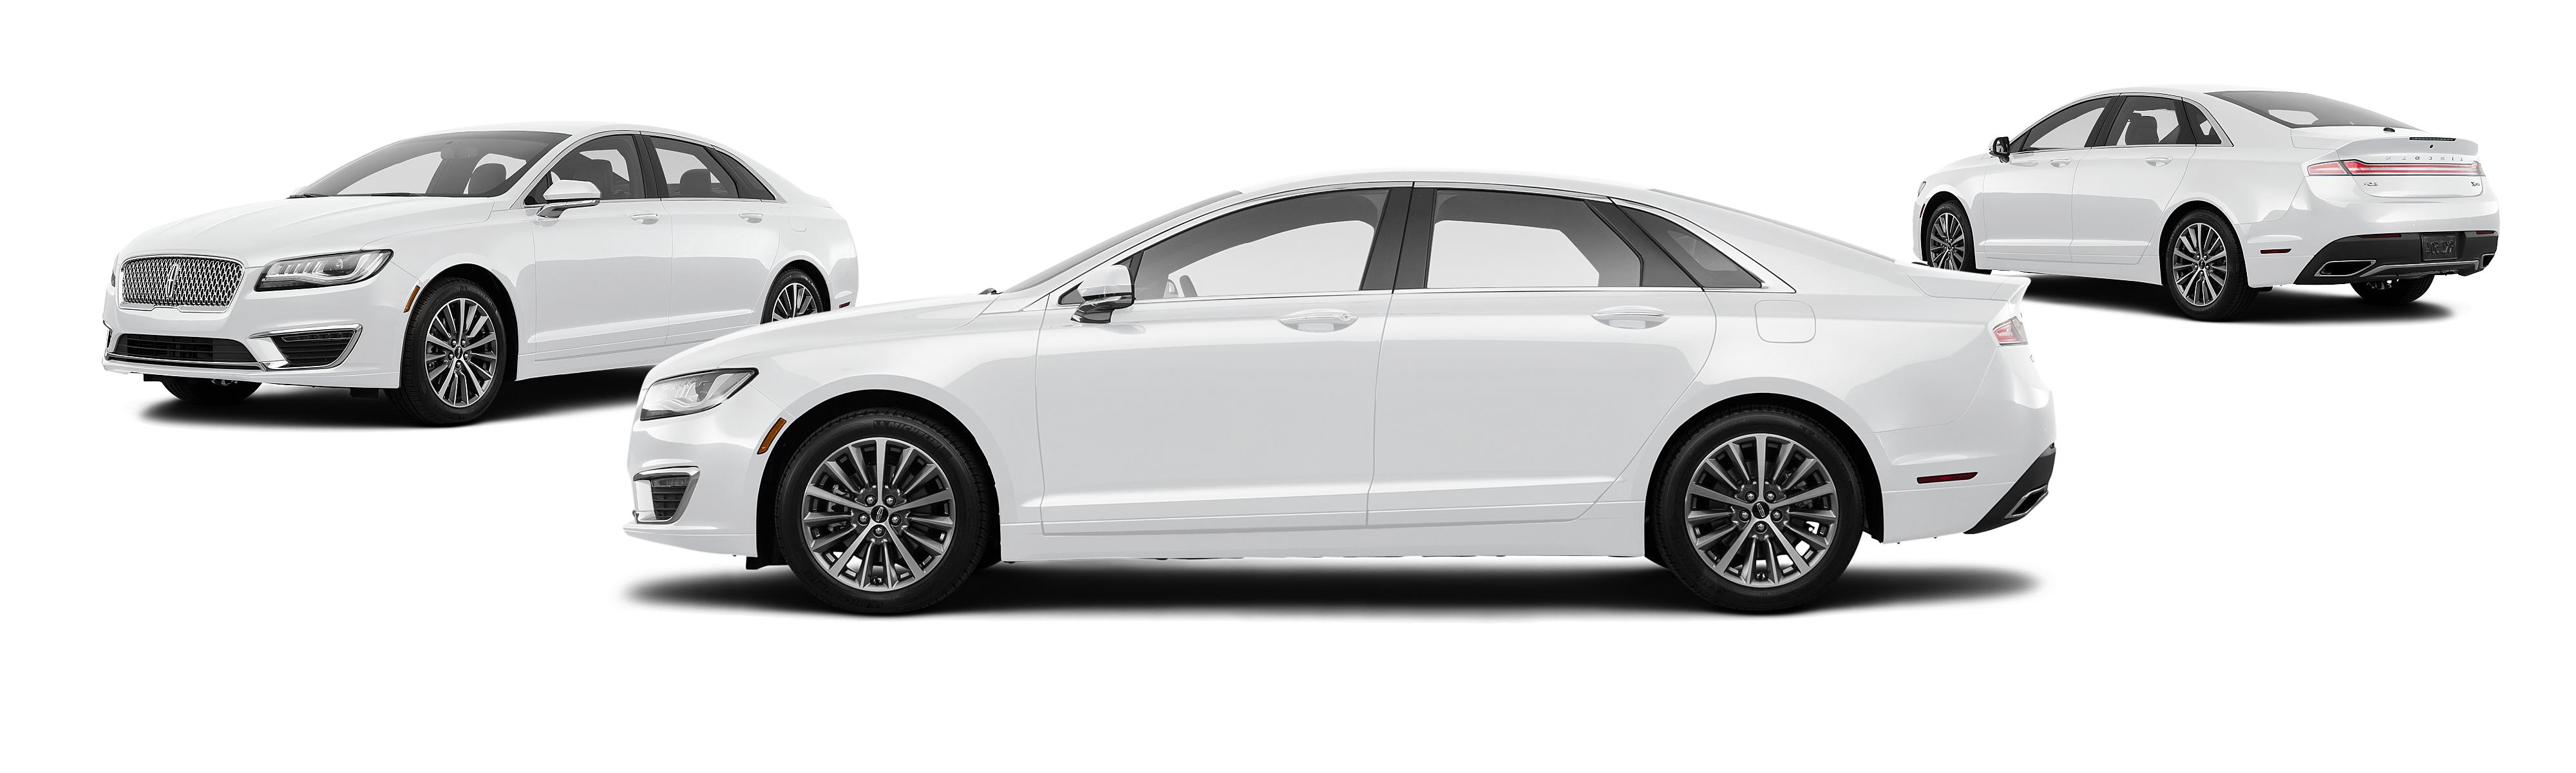 mkz sedan front select trend motor reviews angular cars lincoln rating and lease